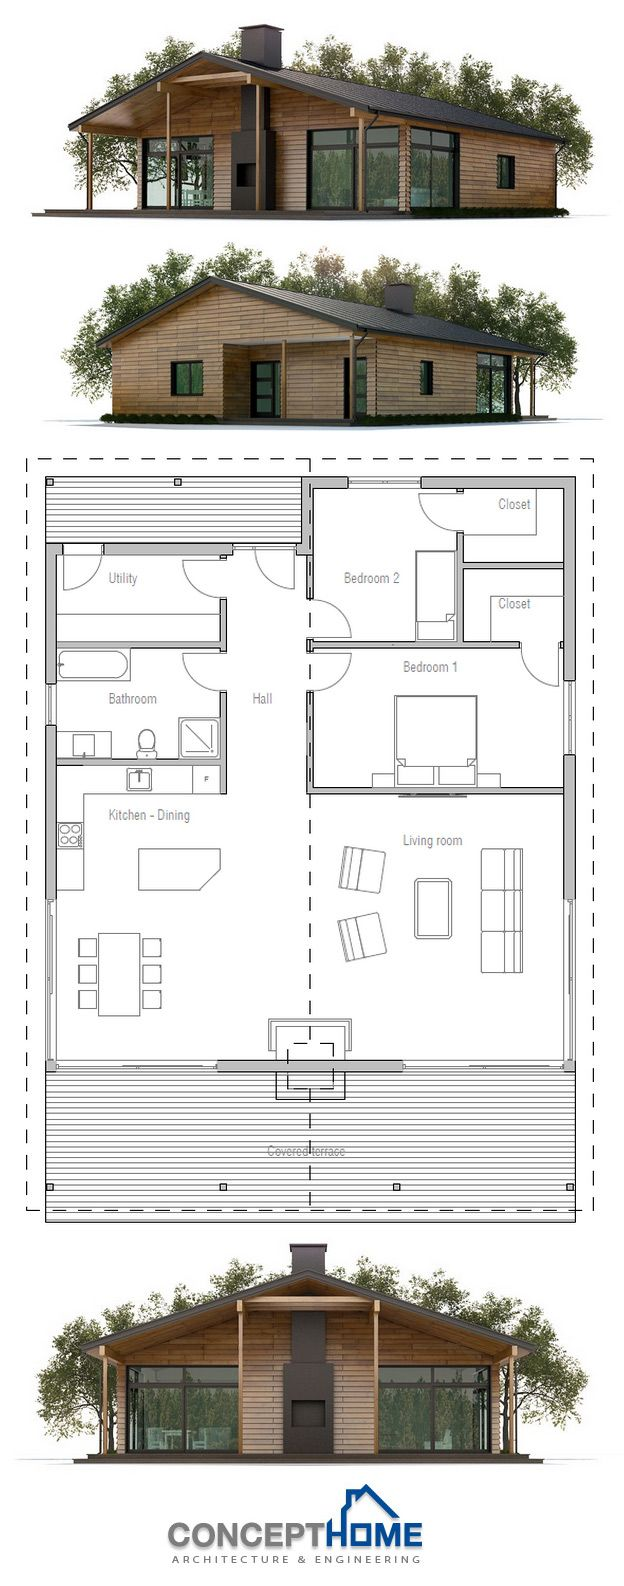 1000+ images about house_plans on Pinterest - ^